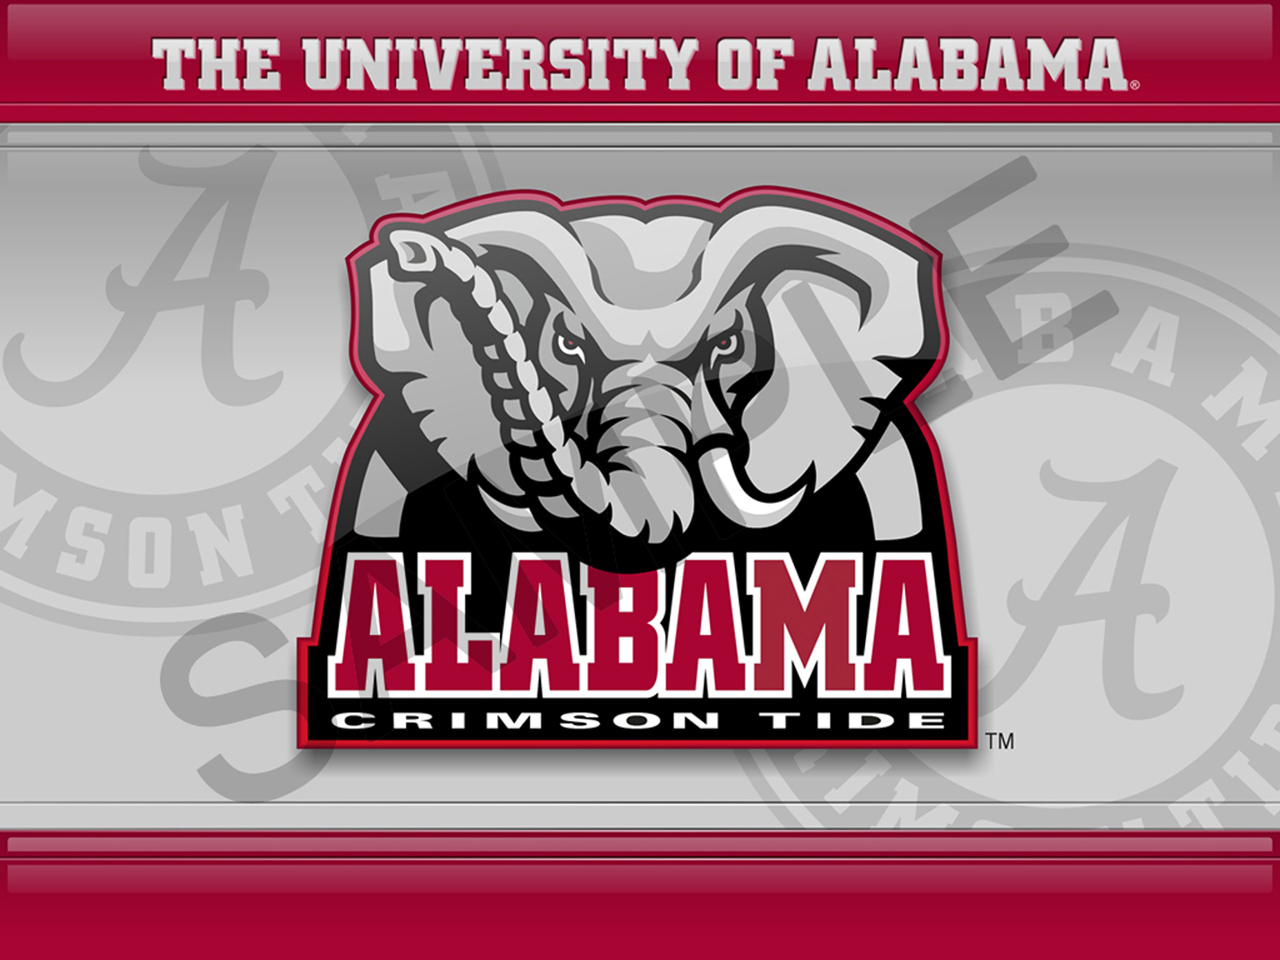 University Of Alabama Football Wallpaper PicsWallpapercom 1280x960